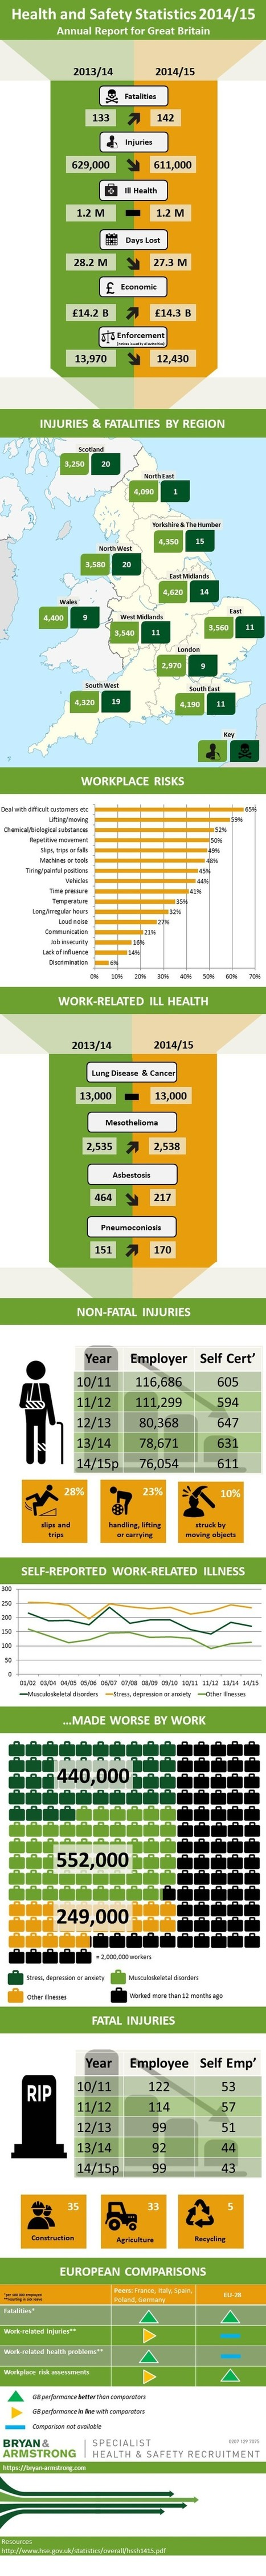 How Health & Safety Statistics are improving in Great Britain | All Infographics | Scoop.it